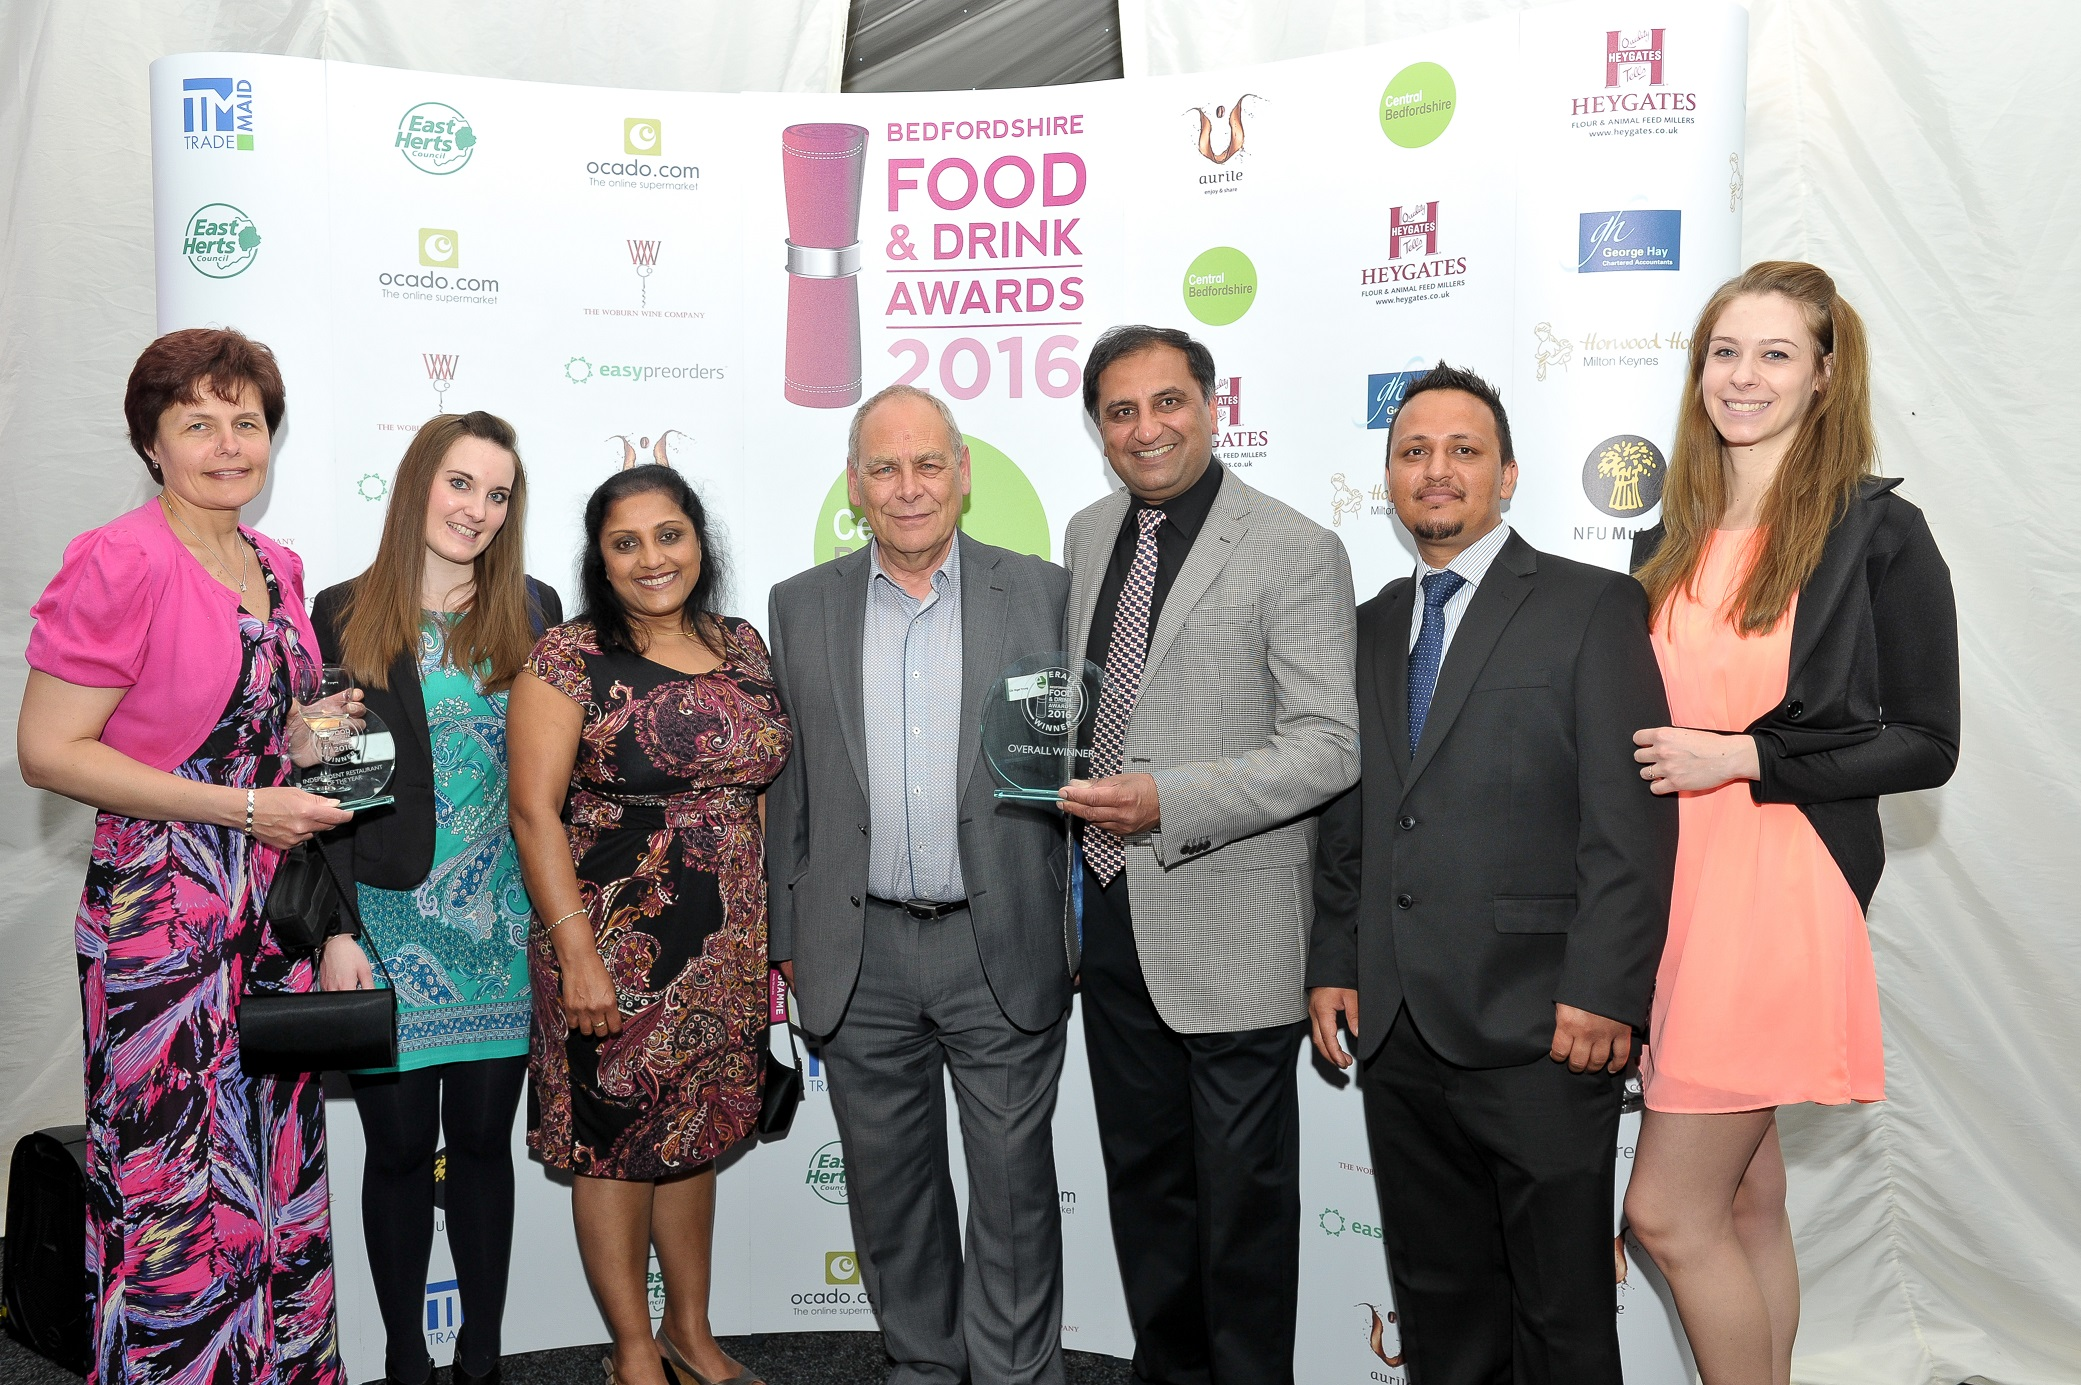 Central Bedfordshire business Go Houghton seizes overall title at the Bedfordshire Food and Drink Awards